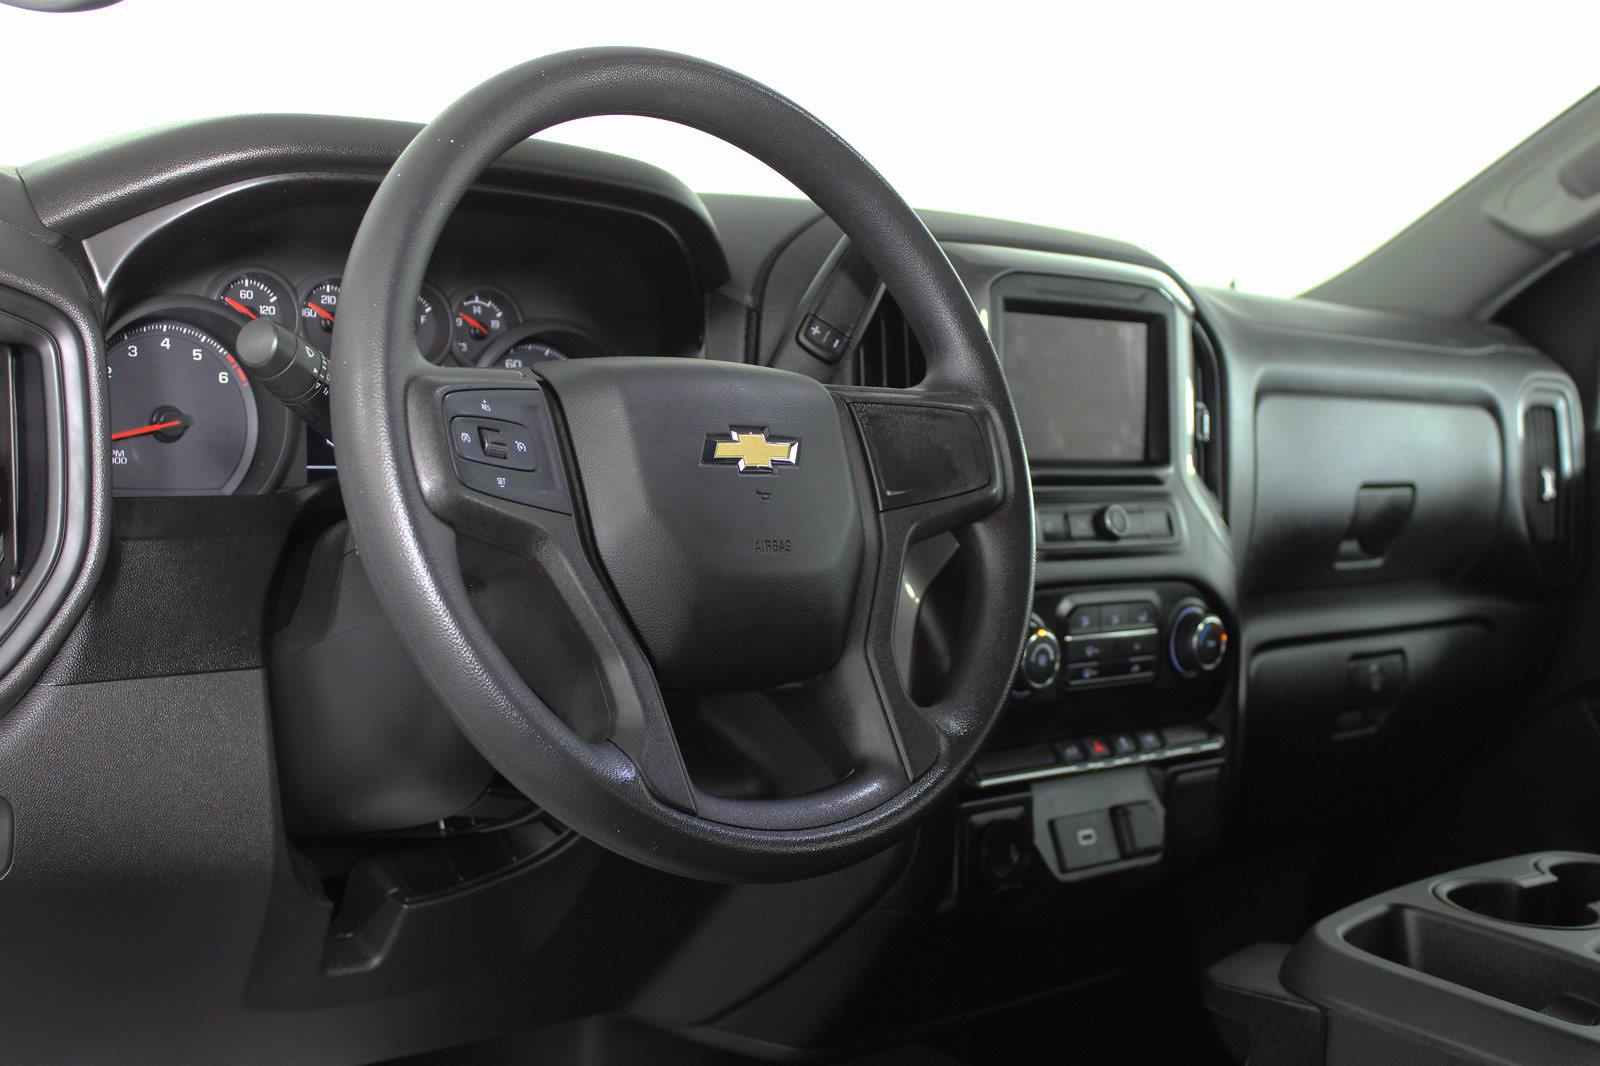 2020 Chevrolet Silverado 1500 Crew Cab 4x2, Pickup #DTC1616 - photo 4